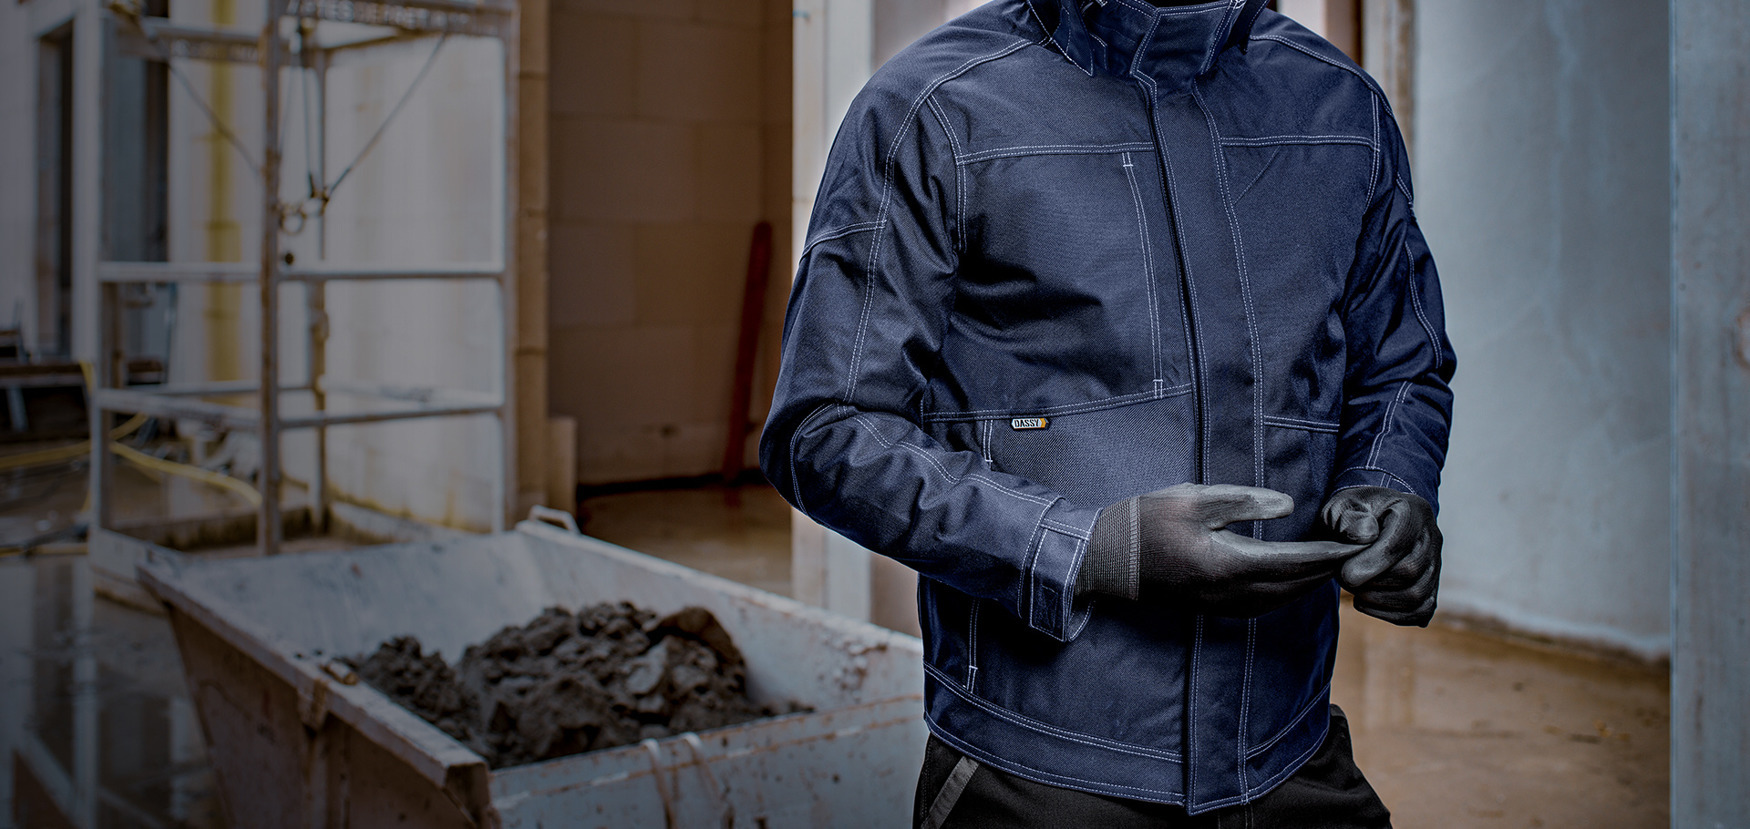 Shop All weather and winter jackets - A jacket for all weather conditions#discover our work jackets#L#1